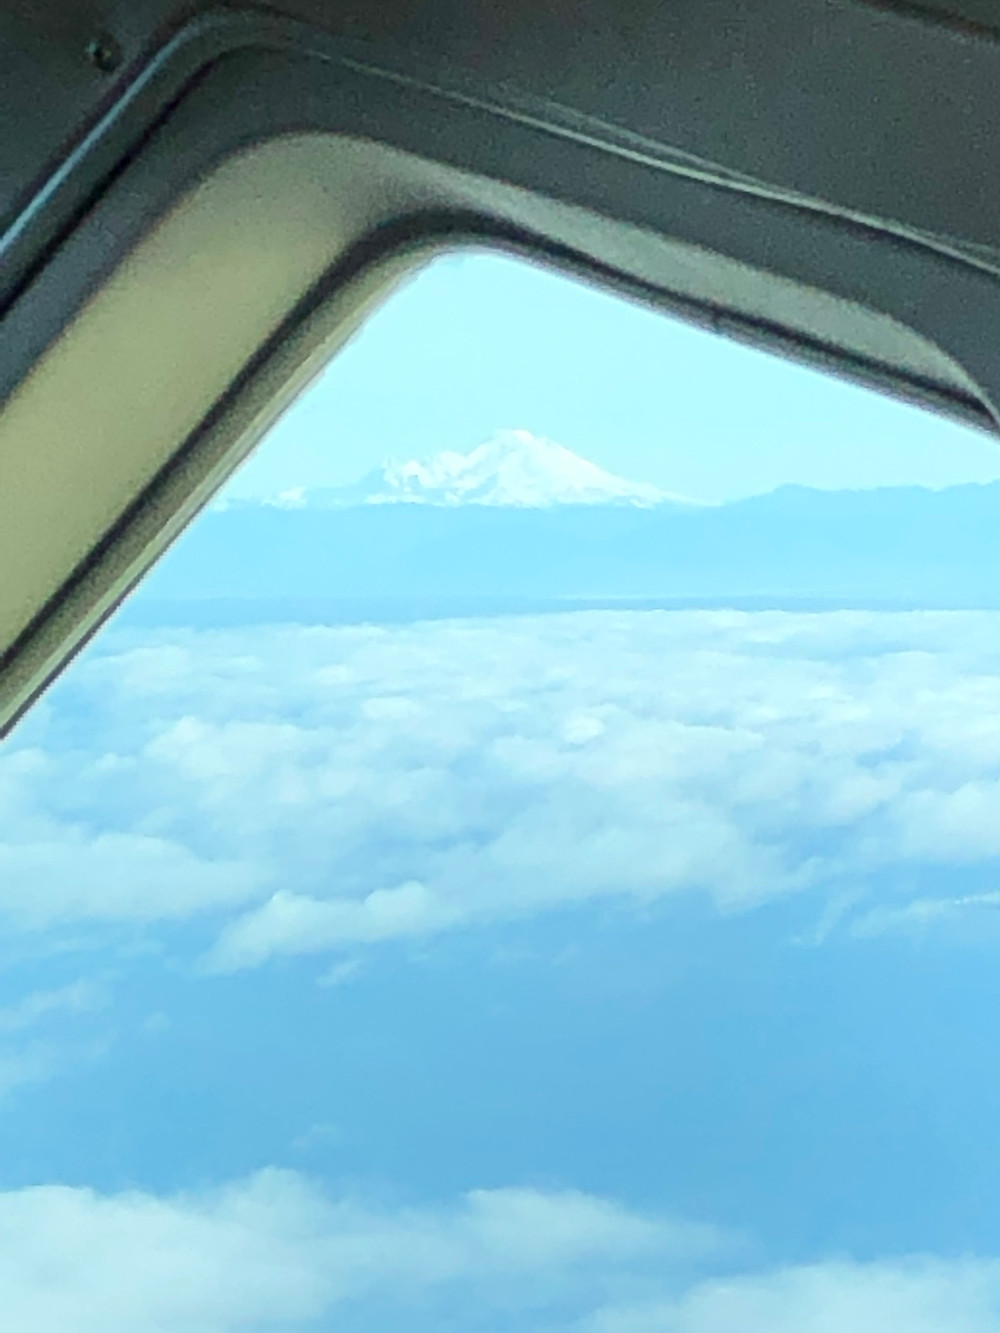 Photo of Mt Baker from the airplane window